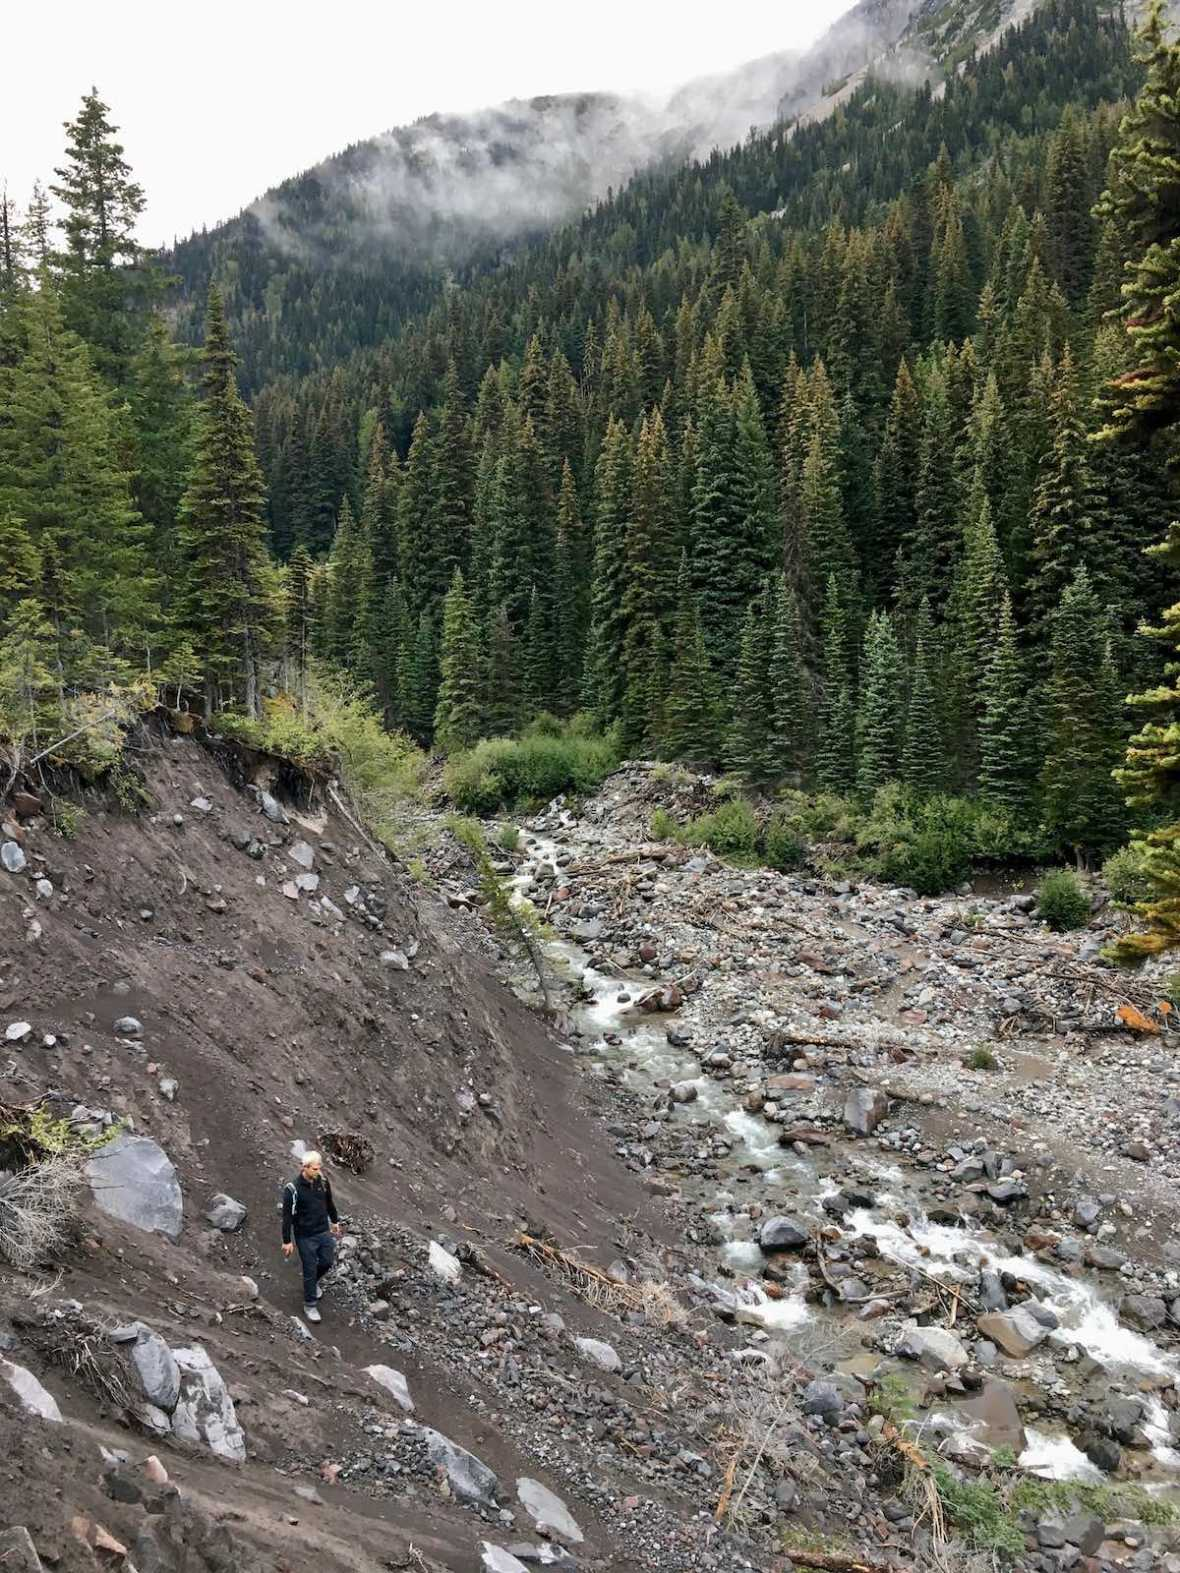 Hiking back down the Emmons Morraine about to cross the White River in Mount Rainier National Park.